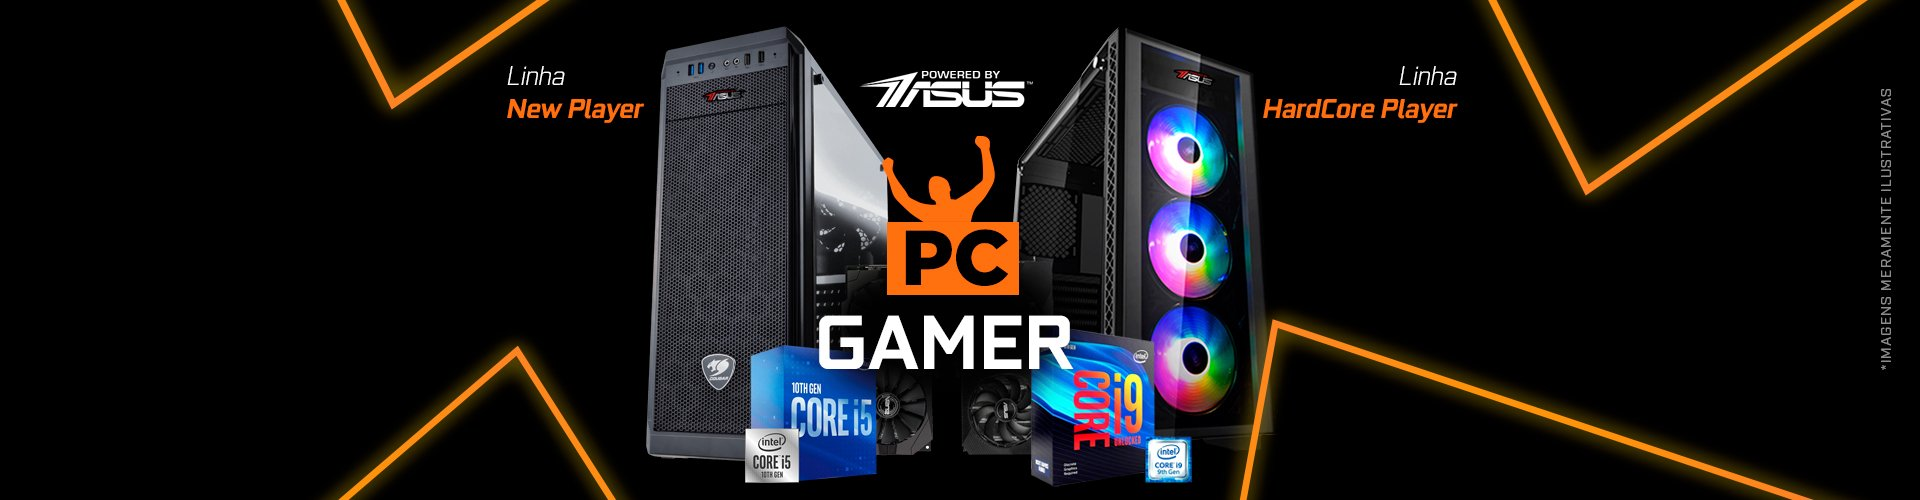 PC Gamer PlayerID